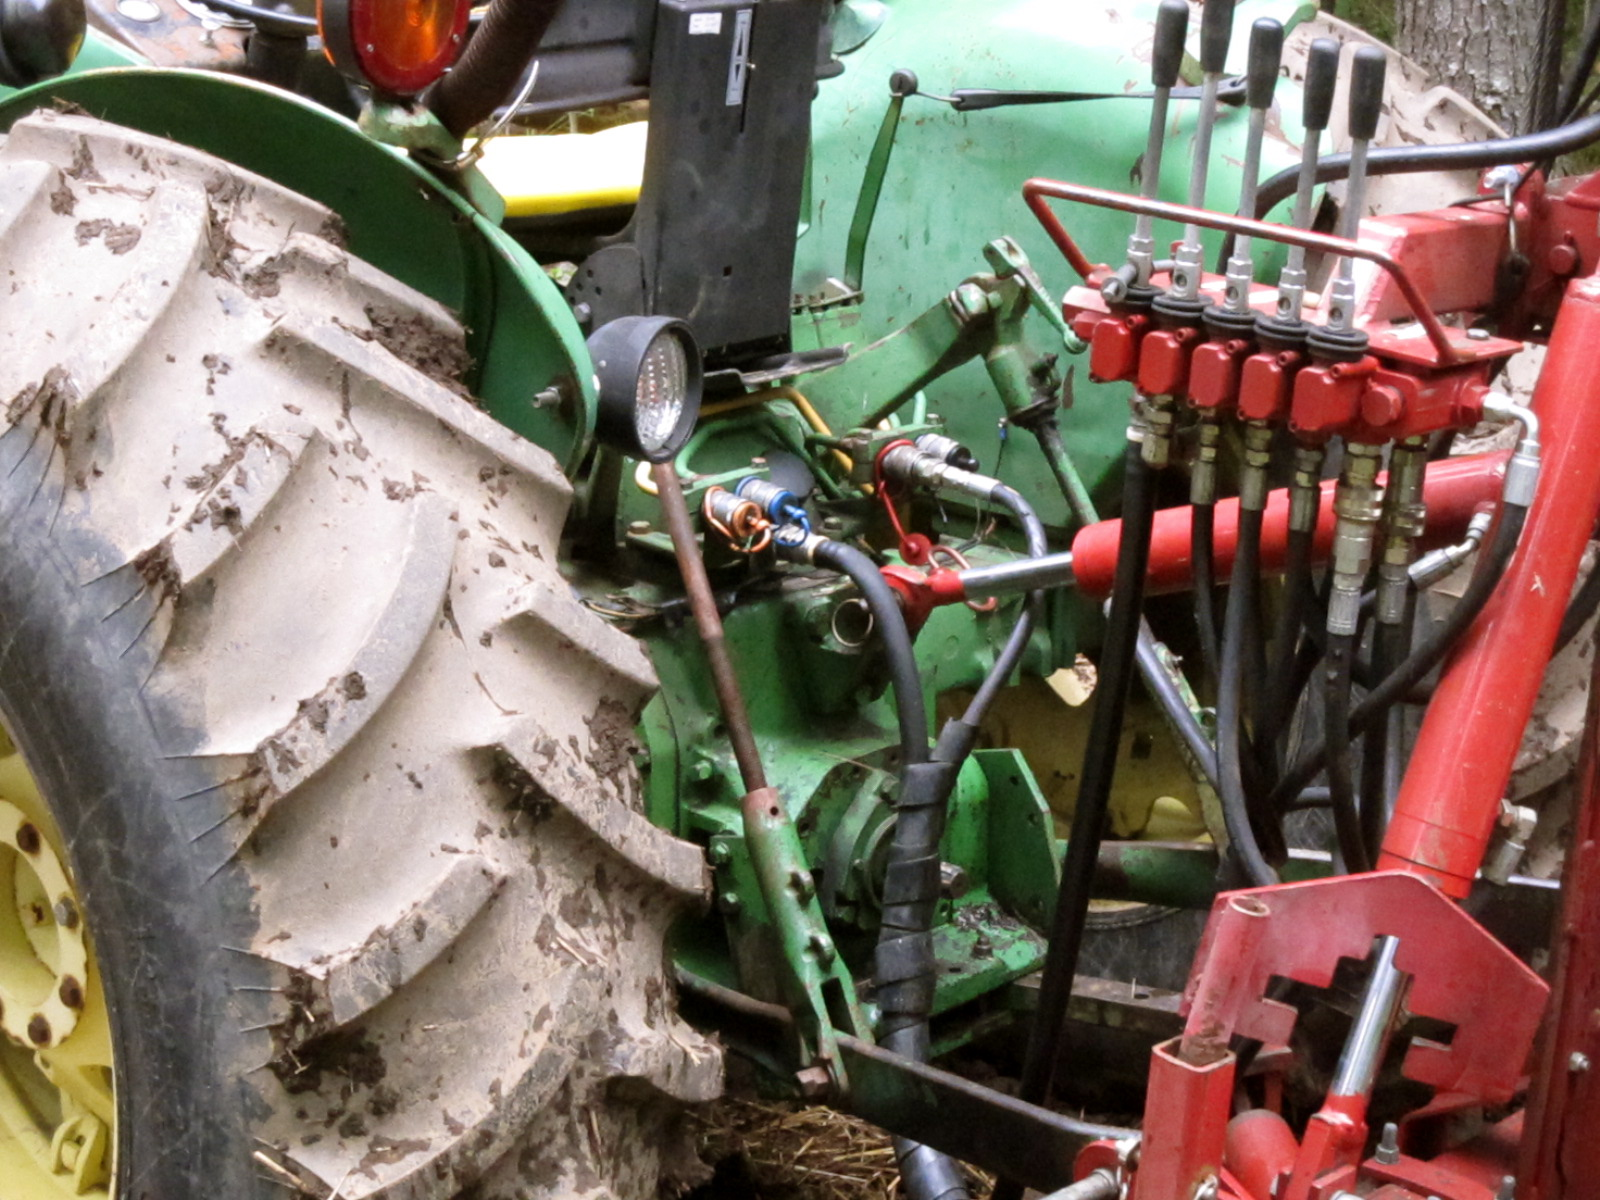 Hydraulic Post Drivers For Tractors : File hydraulic controls tractor and post driver g